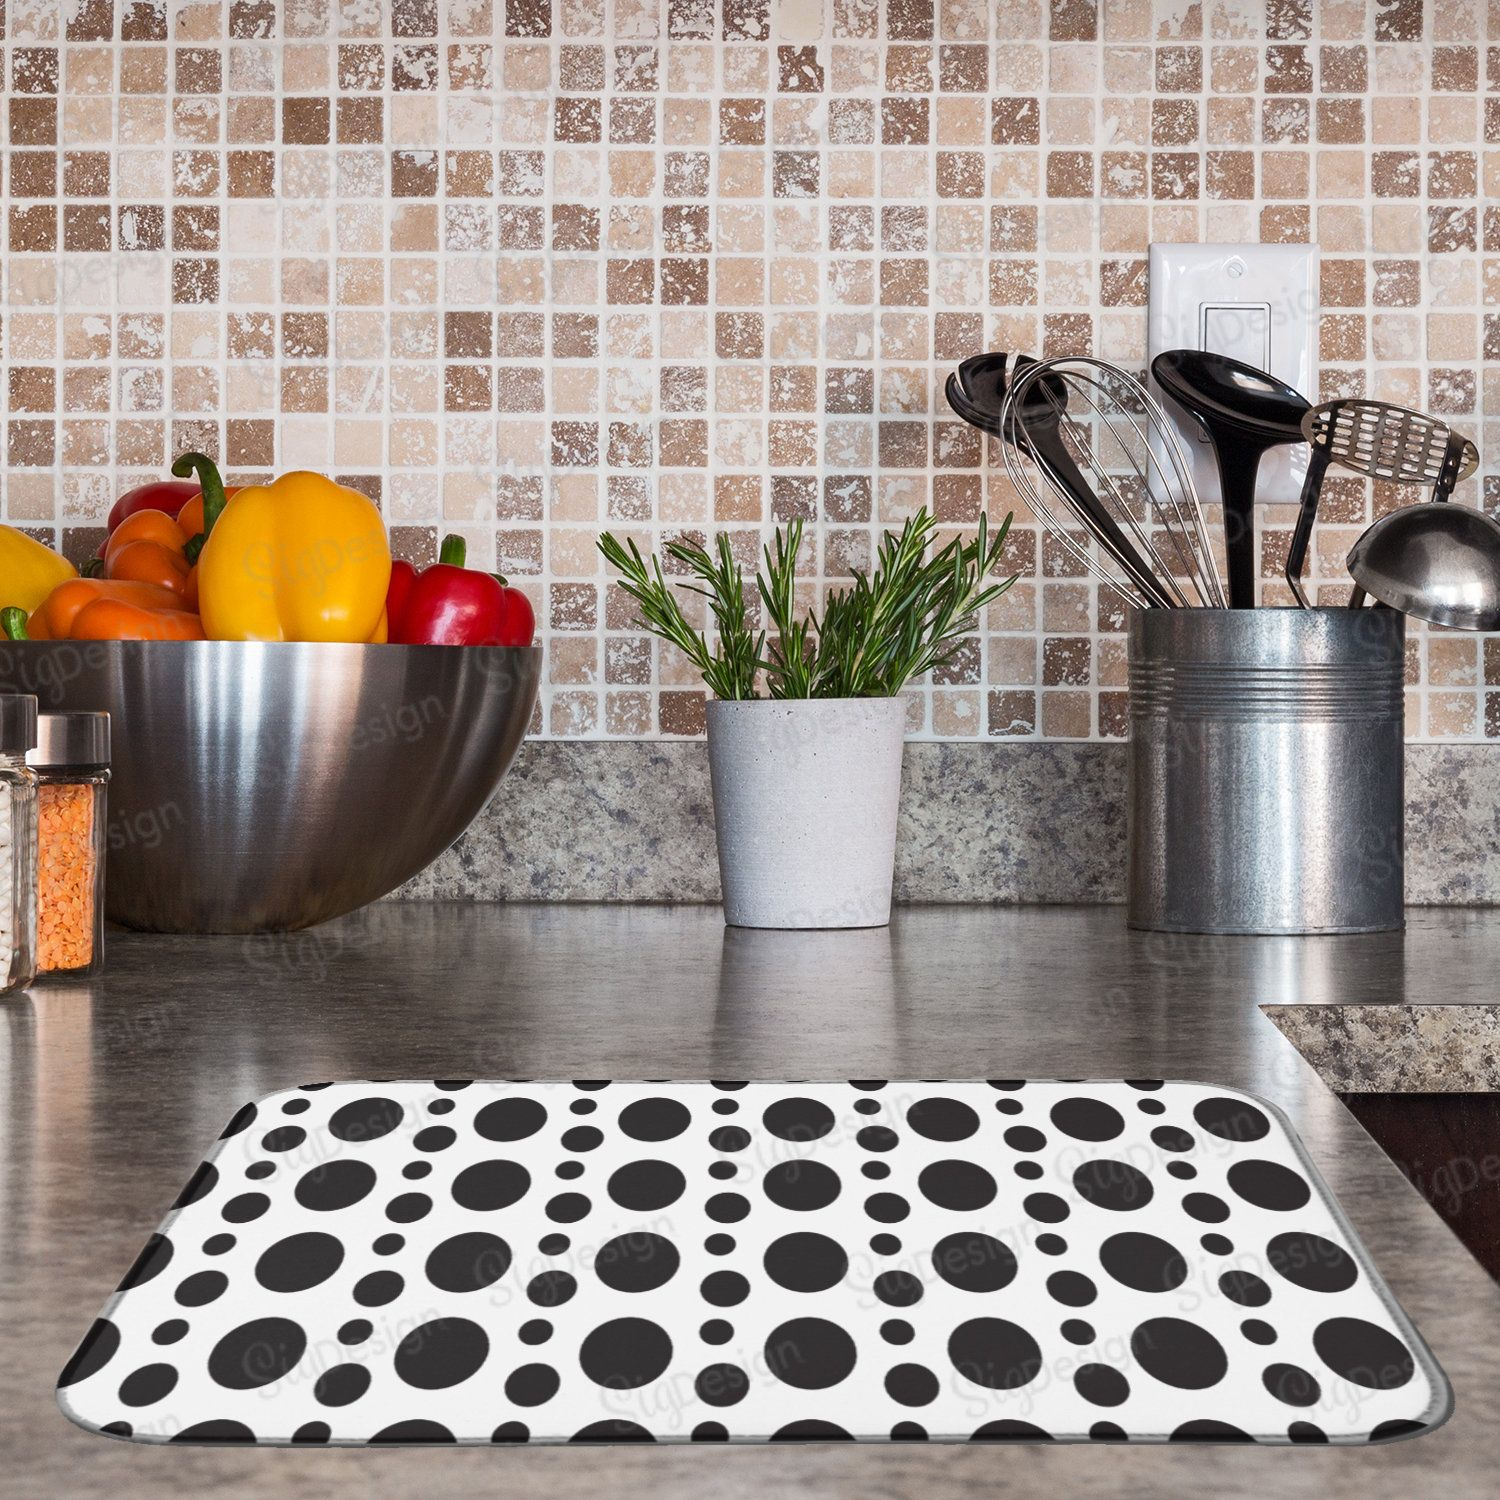 Abstract Circles Dish Drying Mat Water Absorbent Geometric Dish Mat Black And White Kithcen Decor Counter Mat Patterned Dishes Dish Drying Mat Floral Dishes